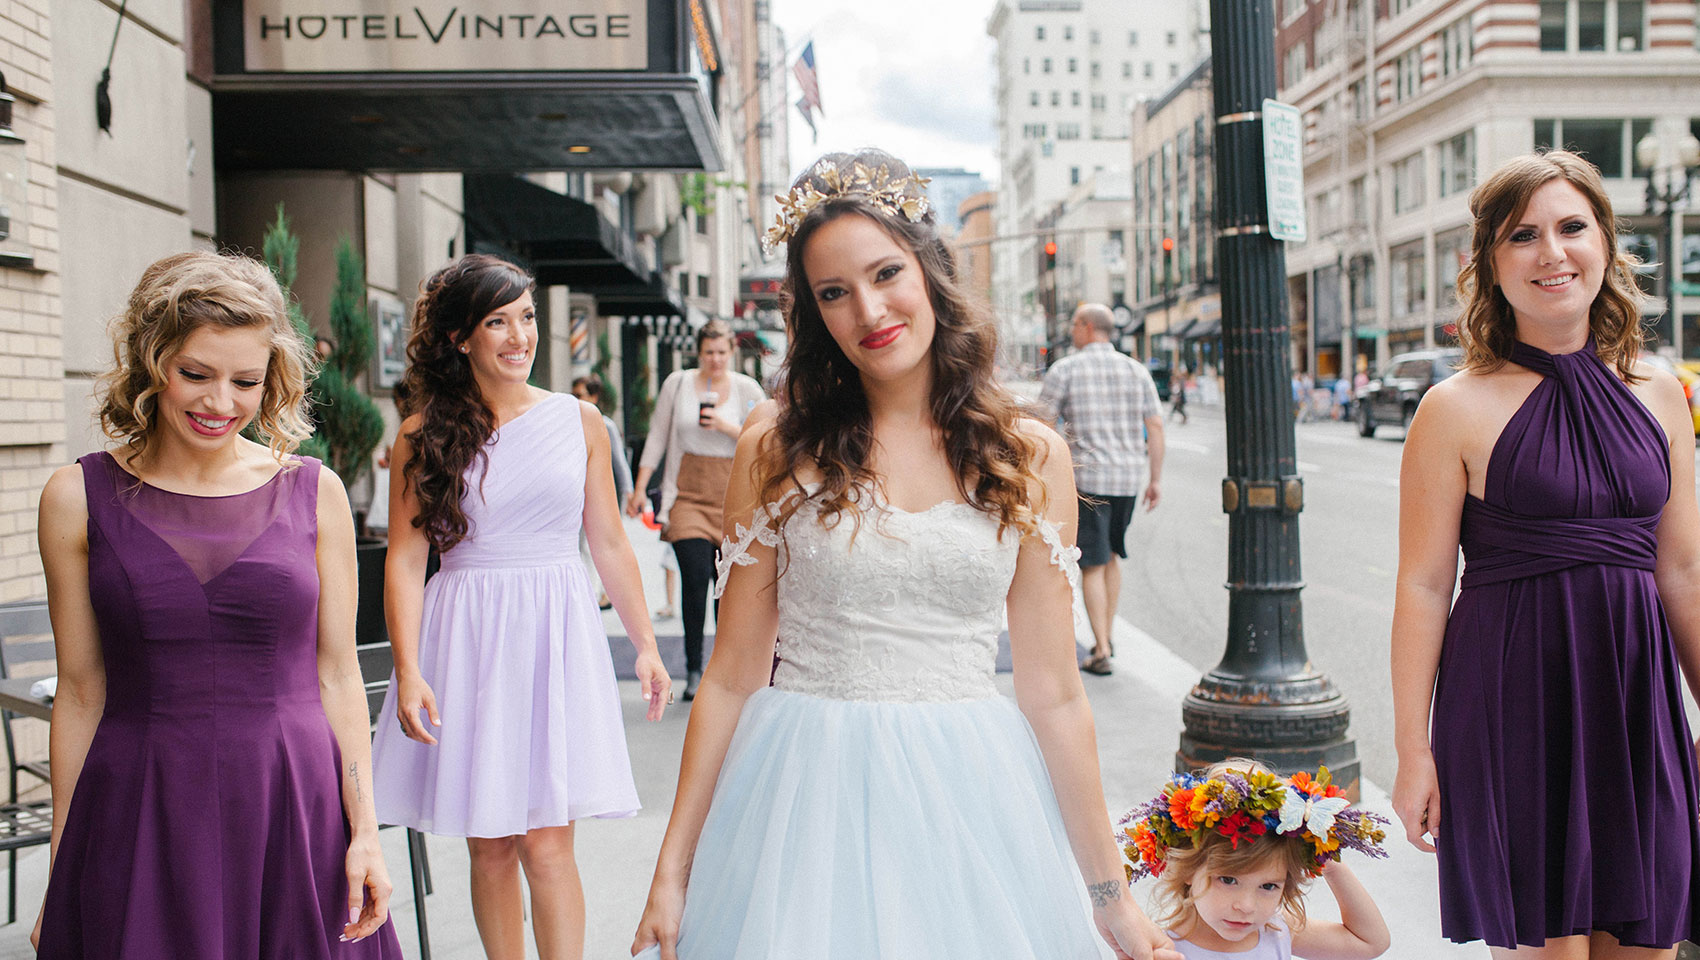 Kimpton hotel vintage wedding